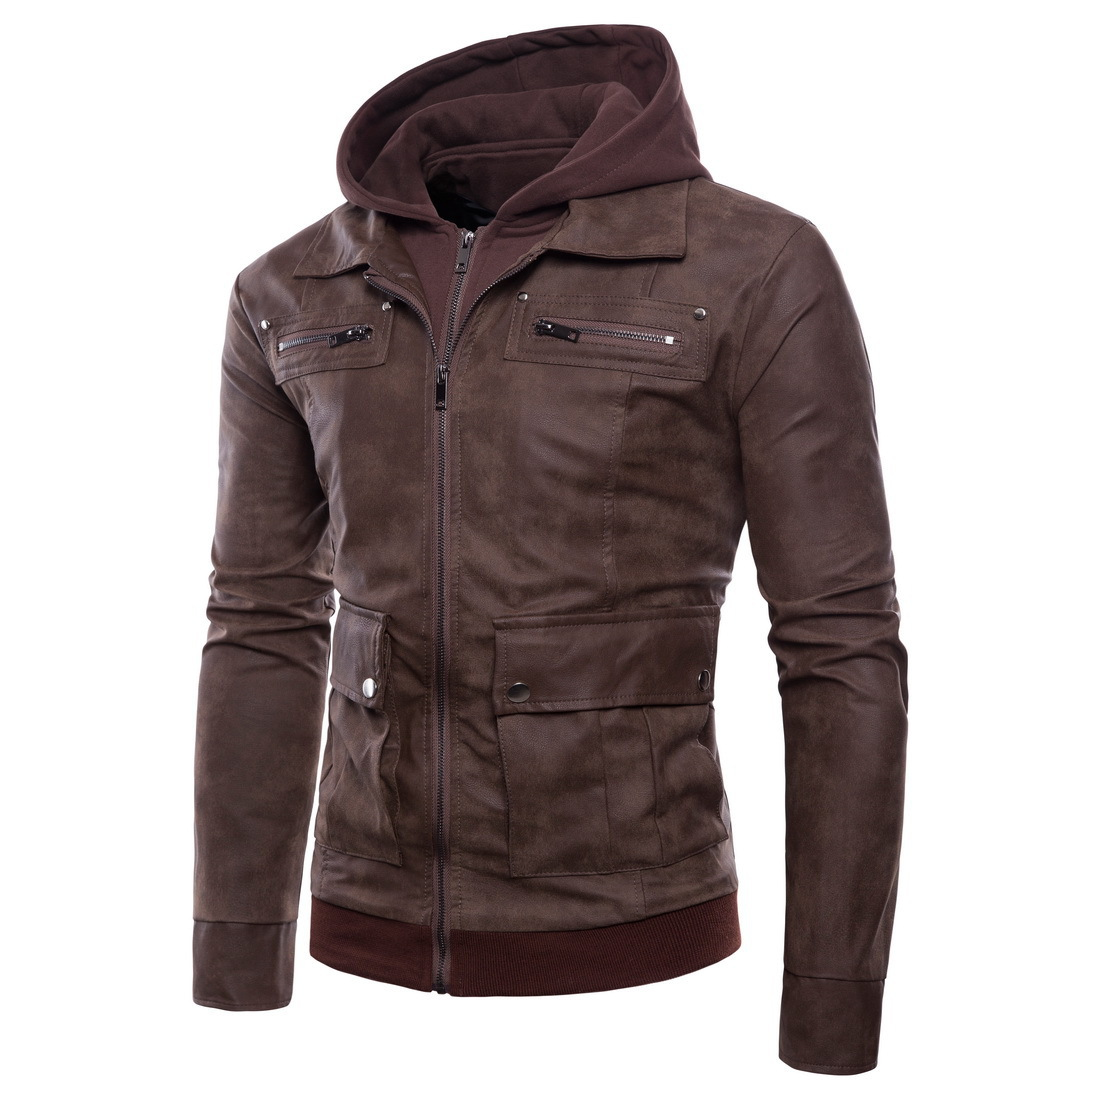 Sumitong men's autumn new style foreign trade hooded leather jacket fake two pieces of pure leather jacket jacket